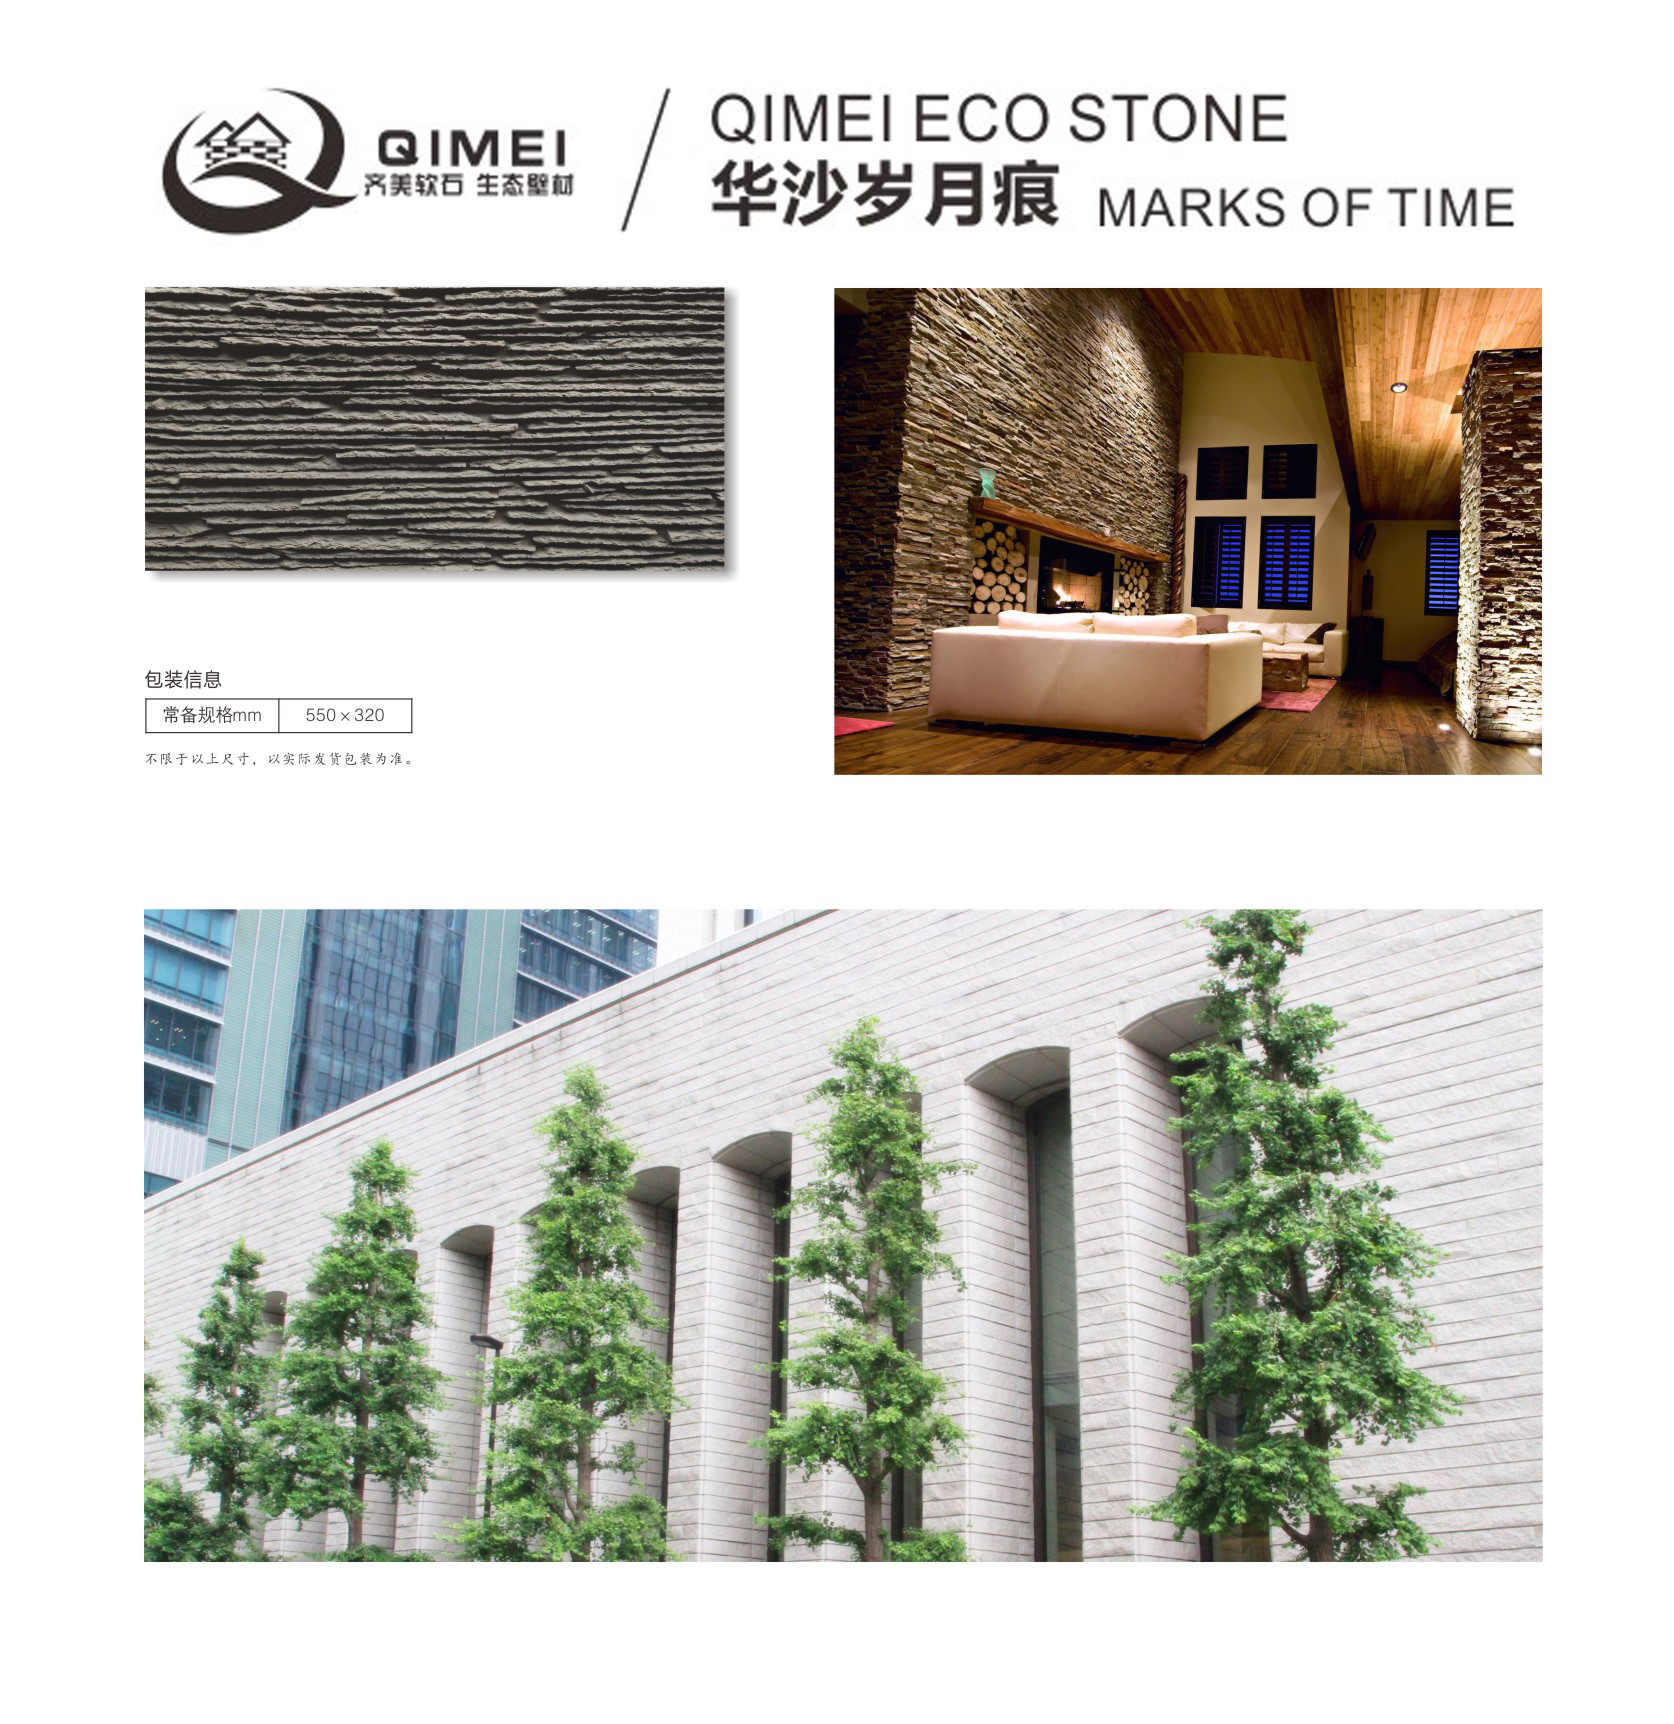 mark of time art stone series customized soft and bendable stone/tile/ceremics